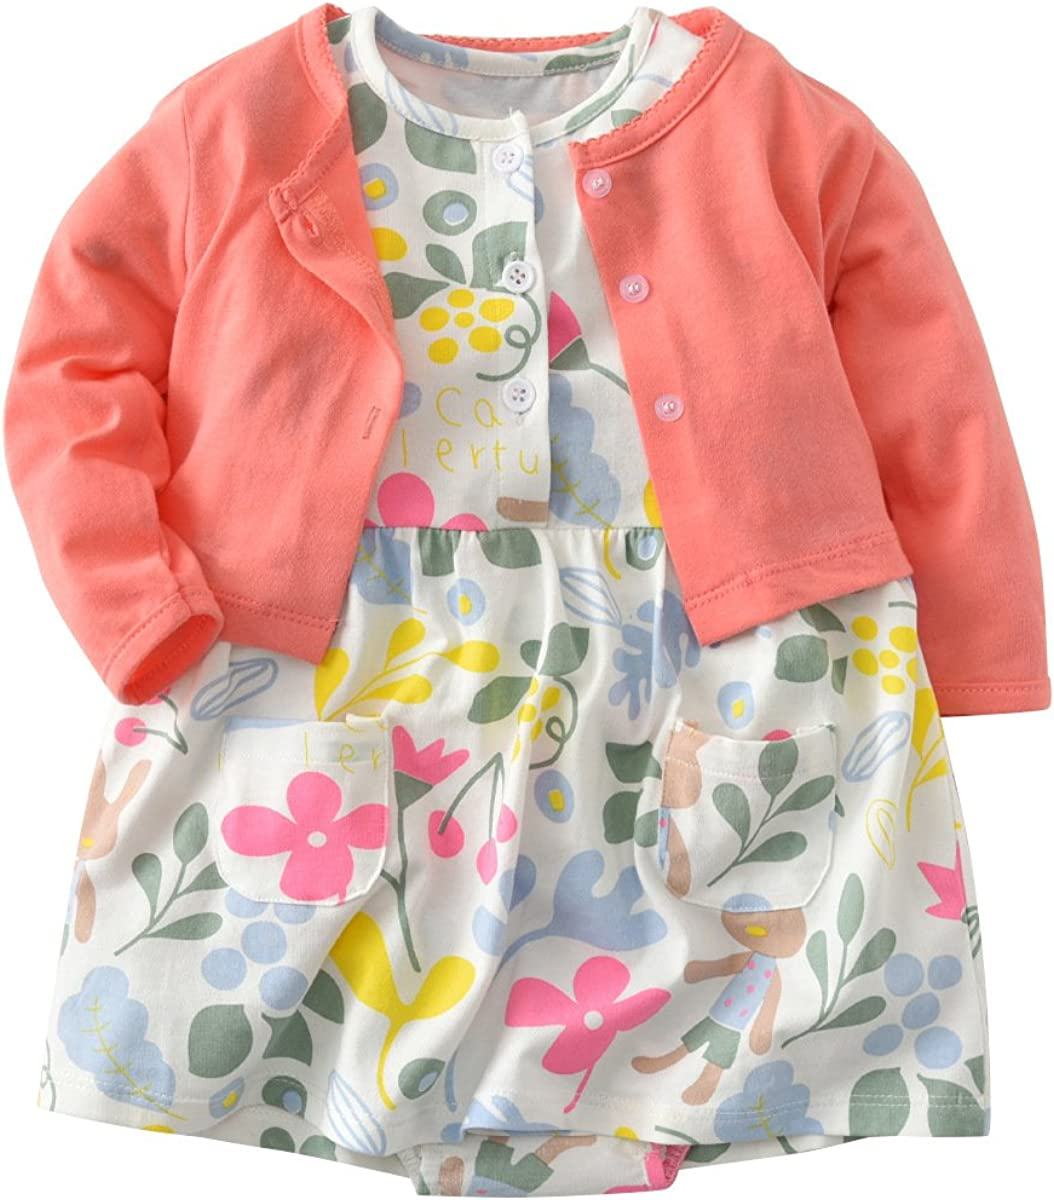 Baby Girl Long Sleeve Coat Short Sleeve Floral Romper Dress Skirt Casual Toddler Baby Girl Clothes Set Outfit